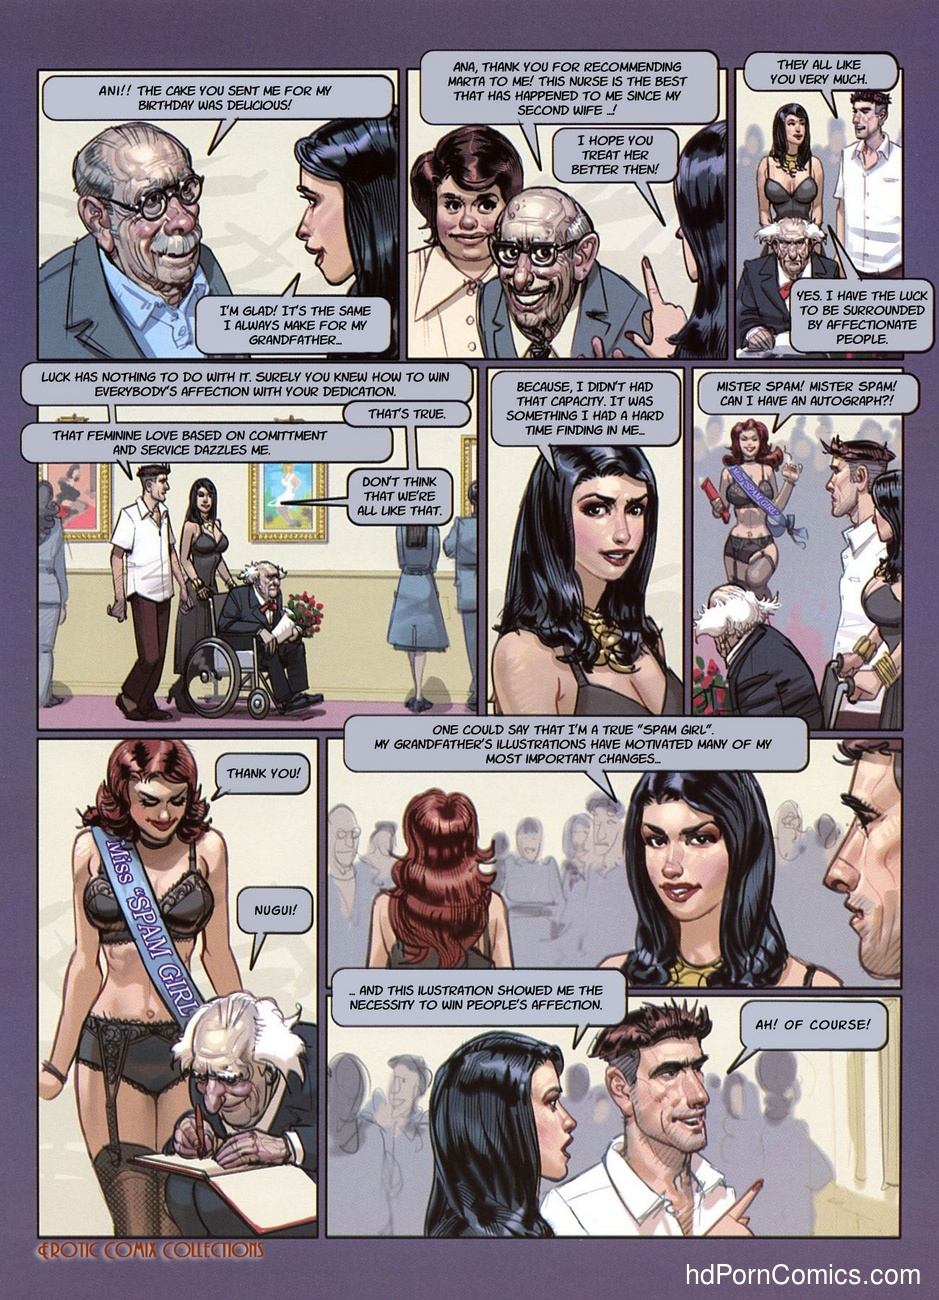 Exhibition-3-The-Happy-Nurse3 free sex comic